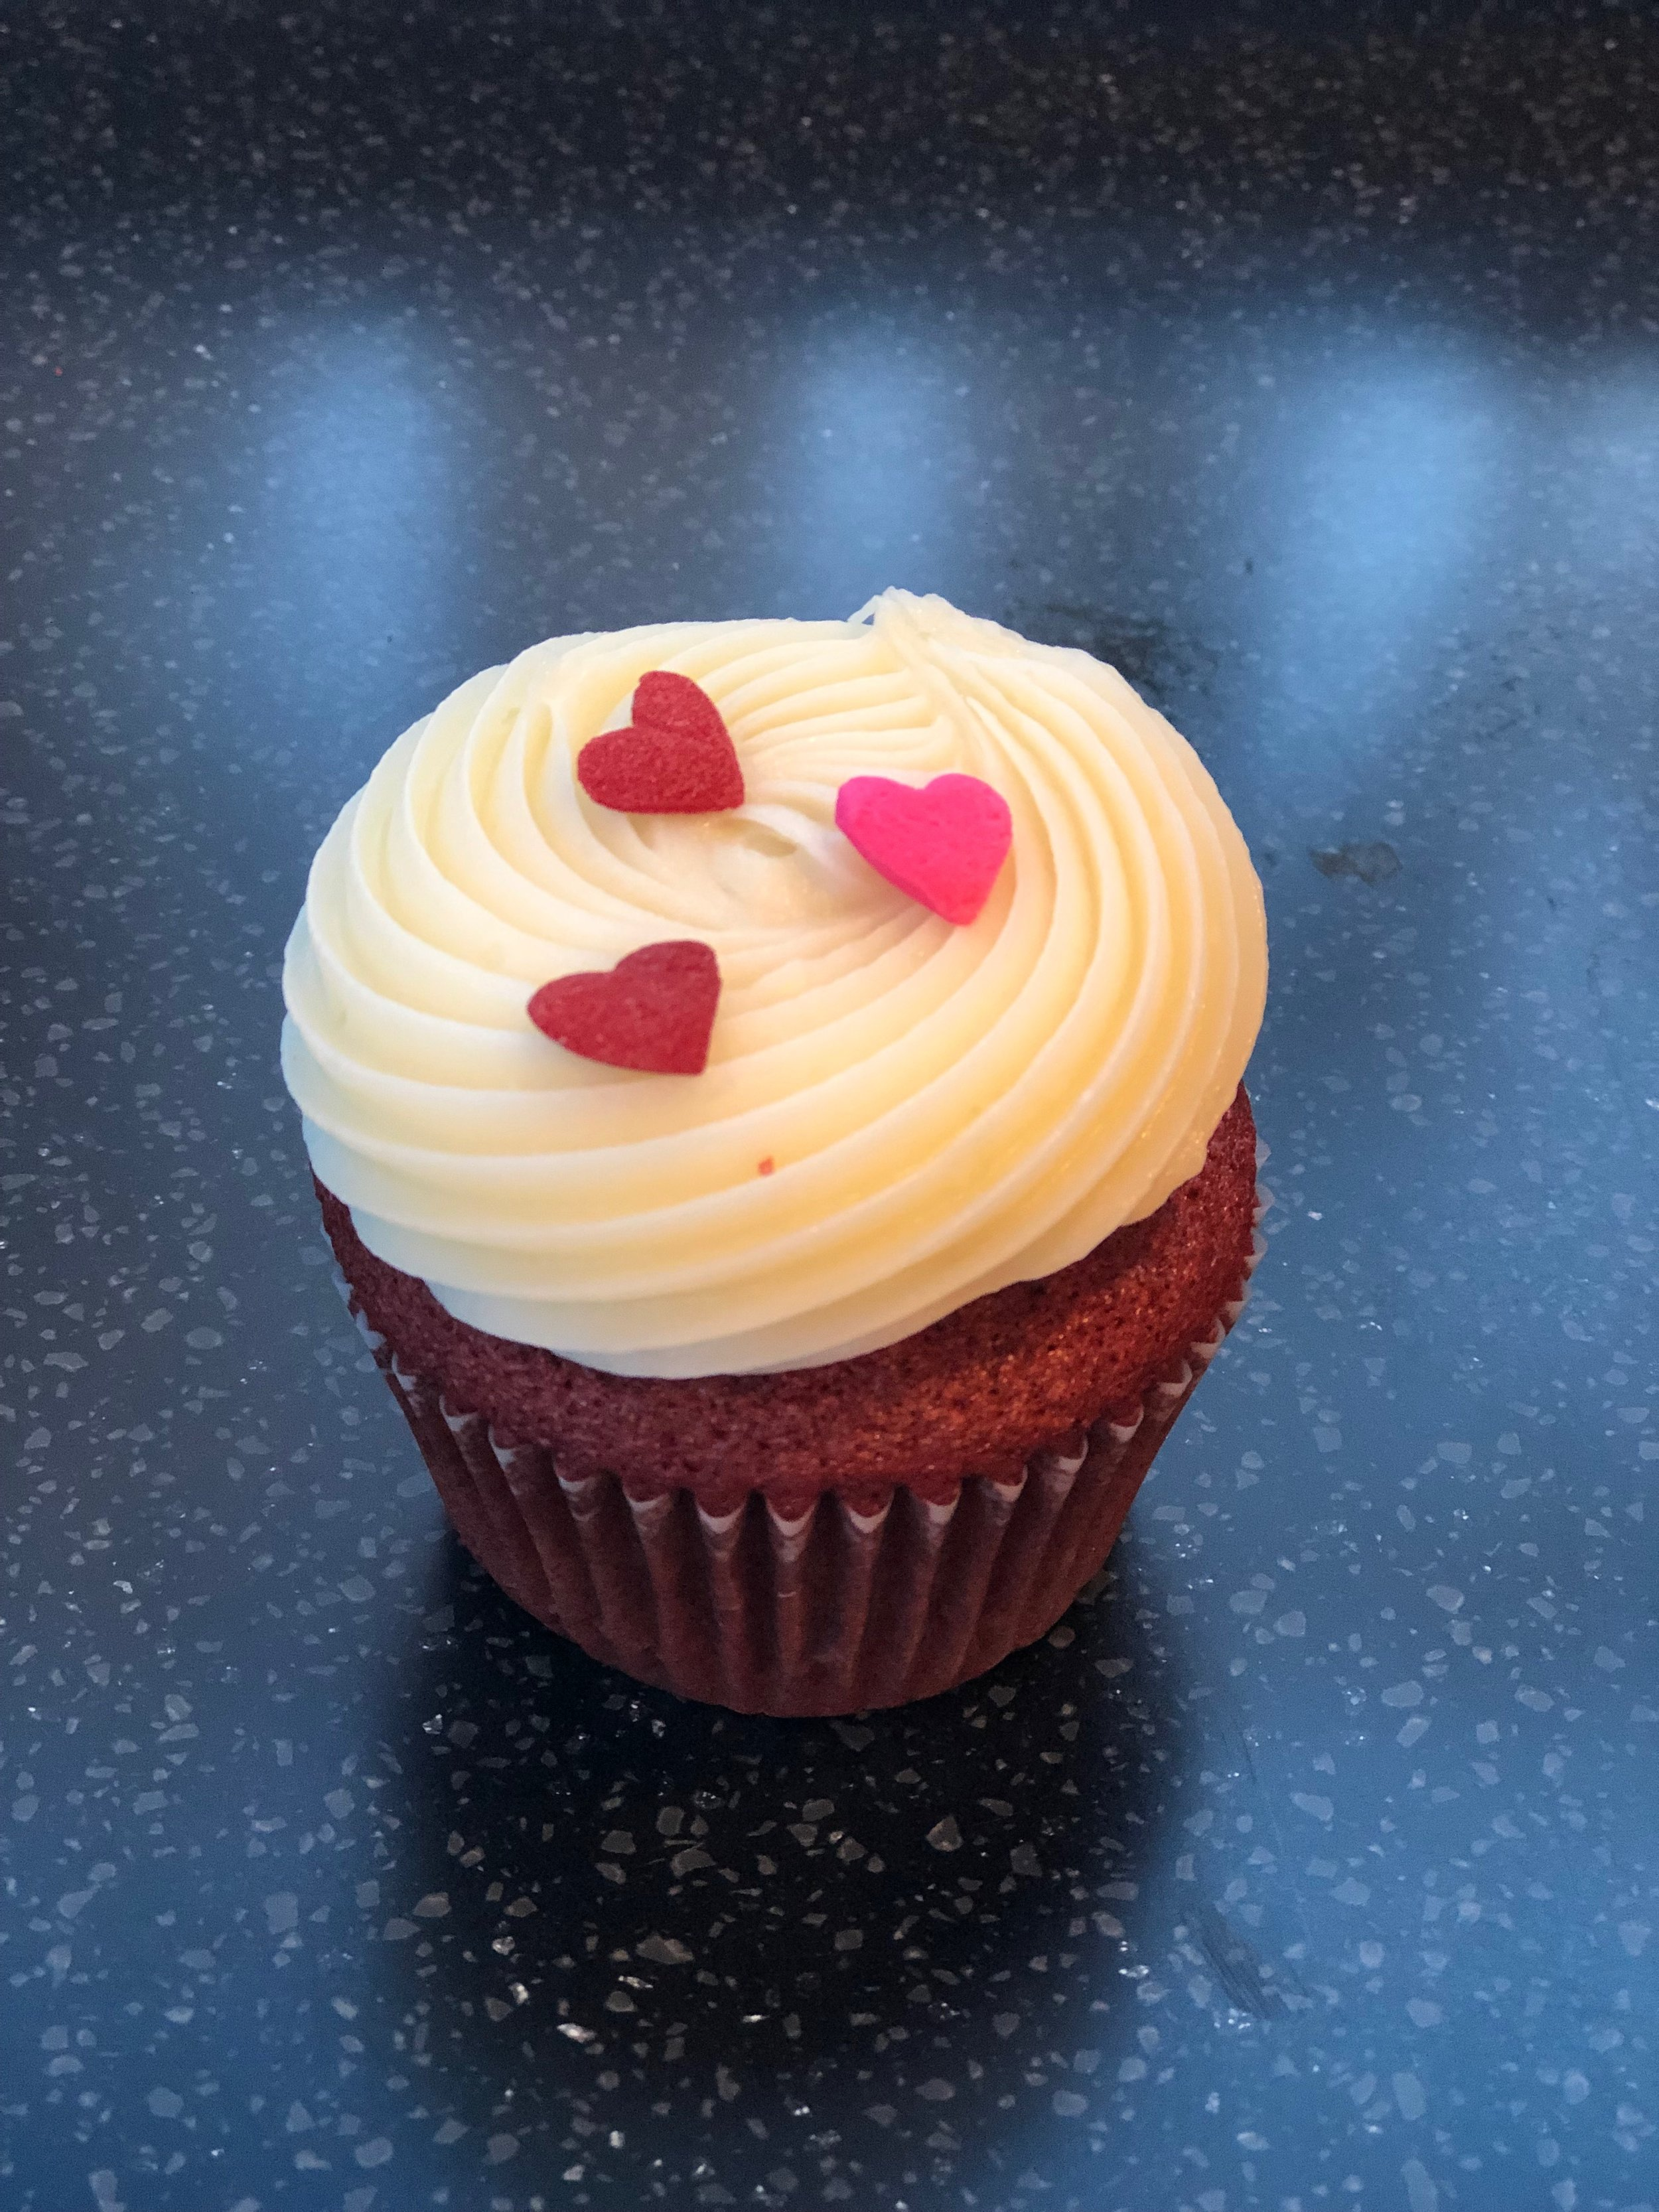 Red velvet cupcake with hearts.JPG